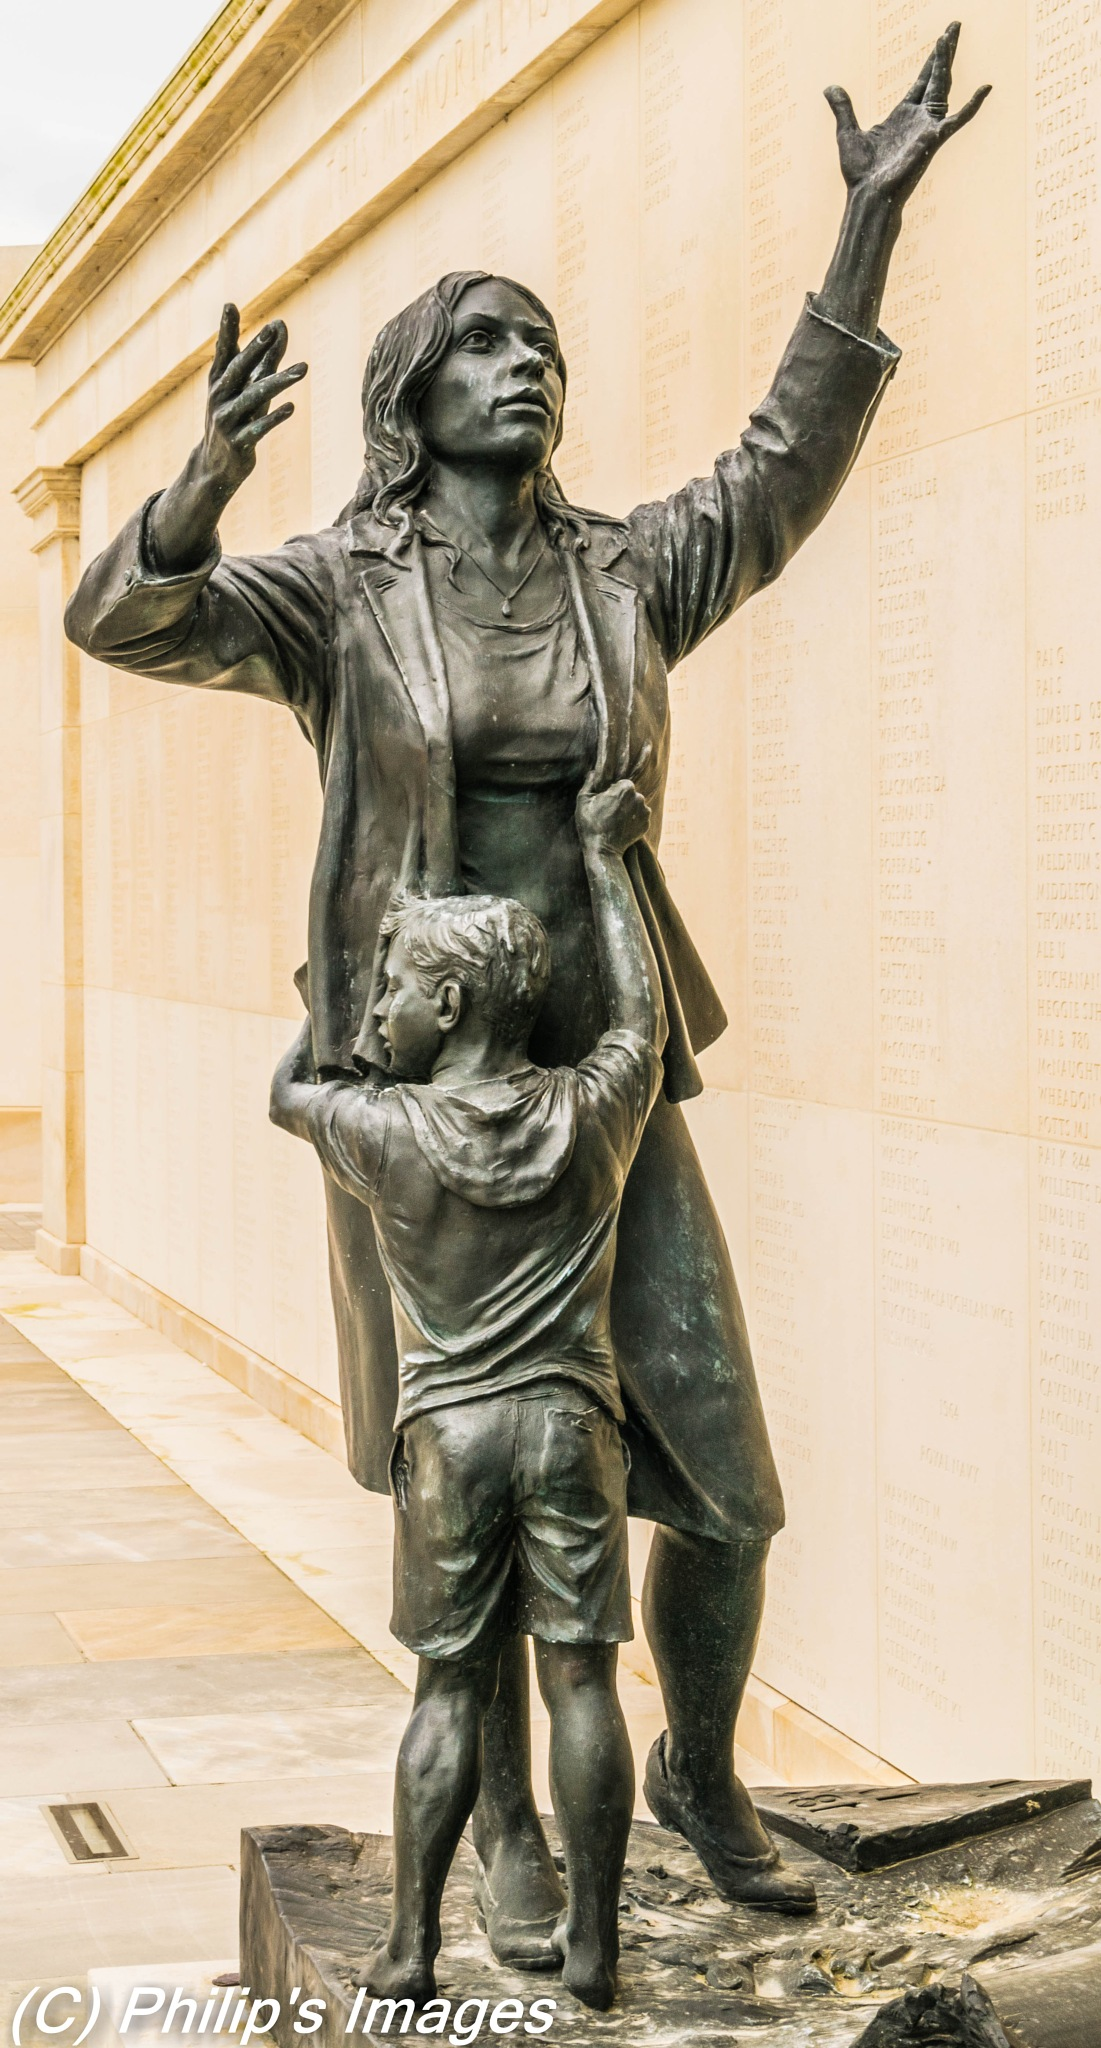 Mother and child sculpture by philips images